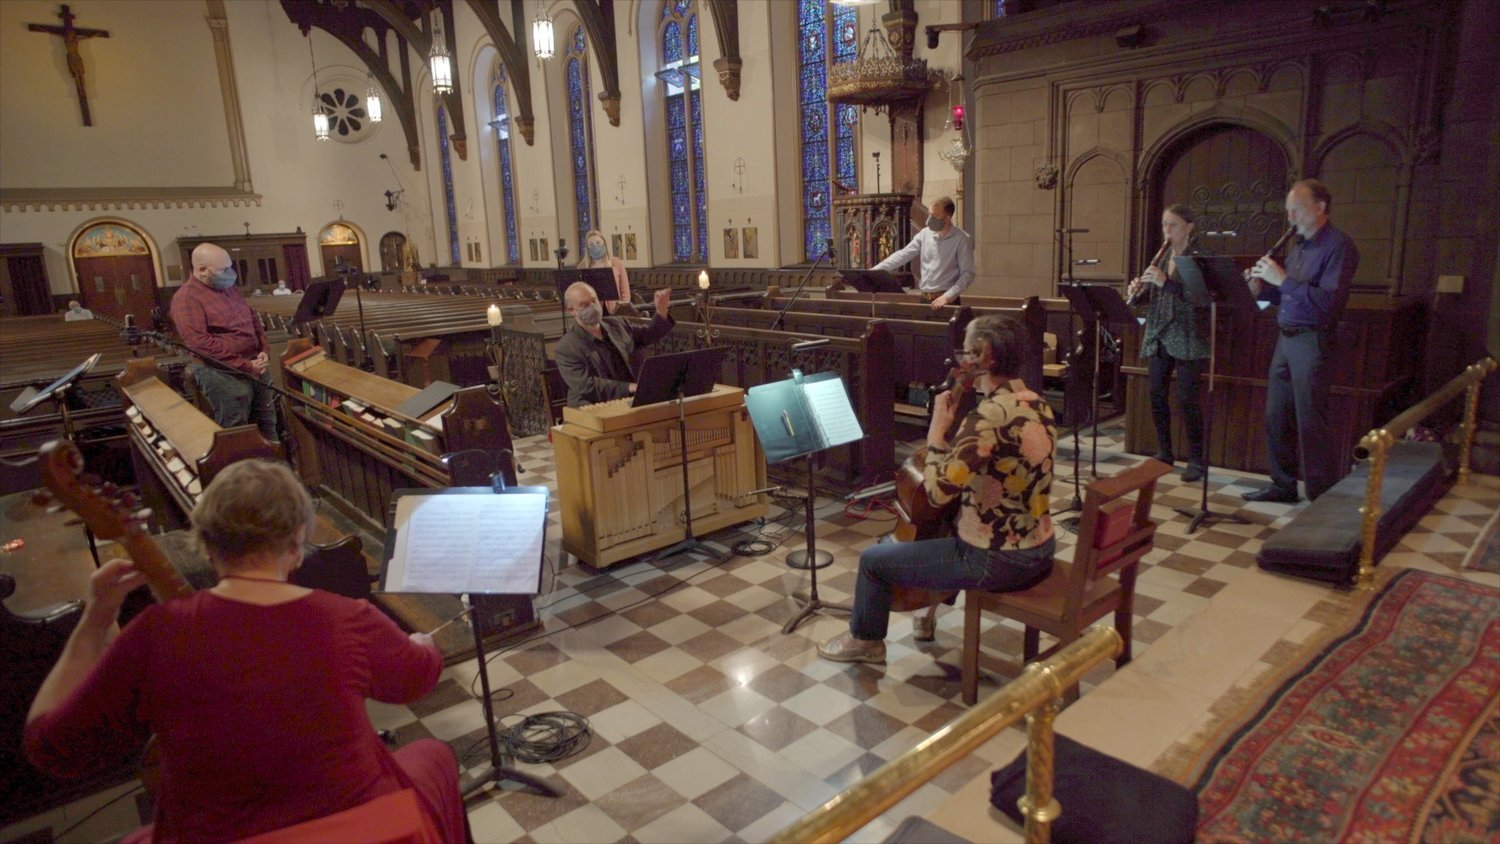 Matthew Glandorf conducting Choral Art Philadelphia at St. Clement's Episcopal Church in Center City.